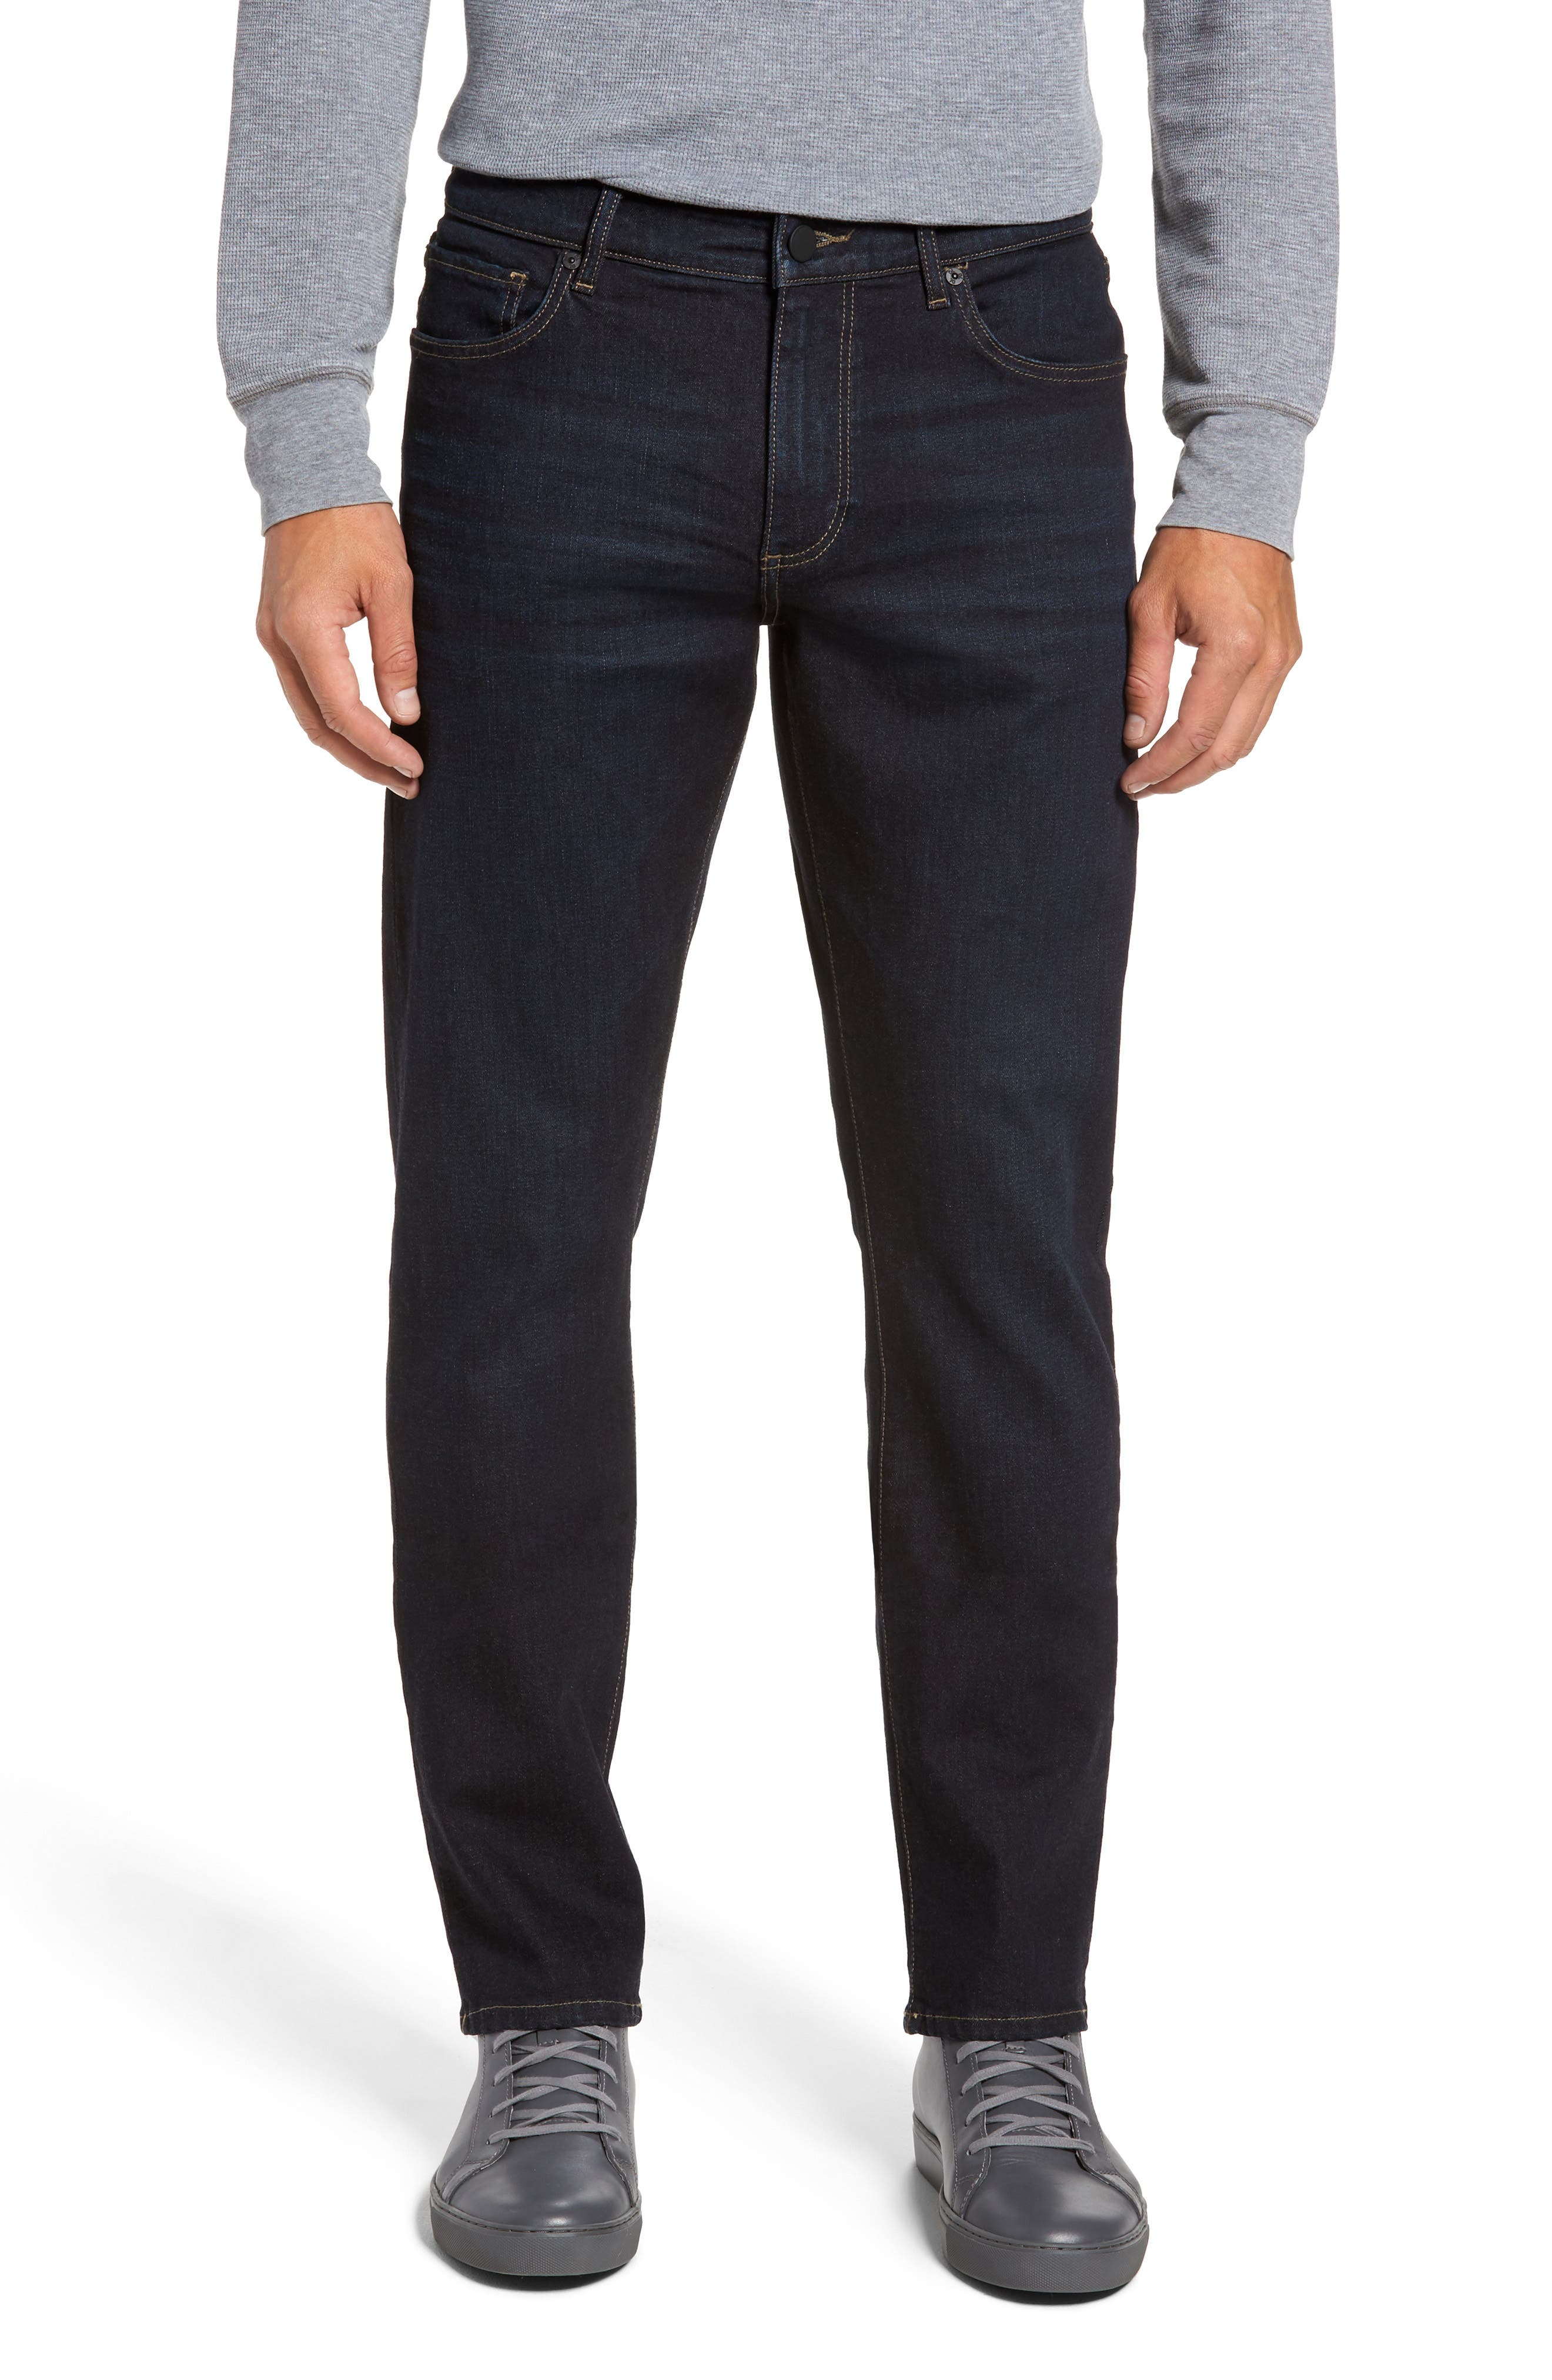 Russell Slim Straight Leg Jeans,                             Main thumbnail 1, color,                             425